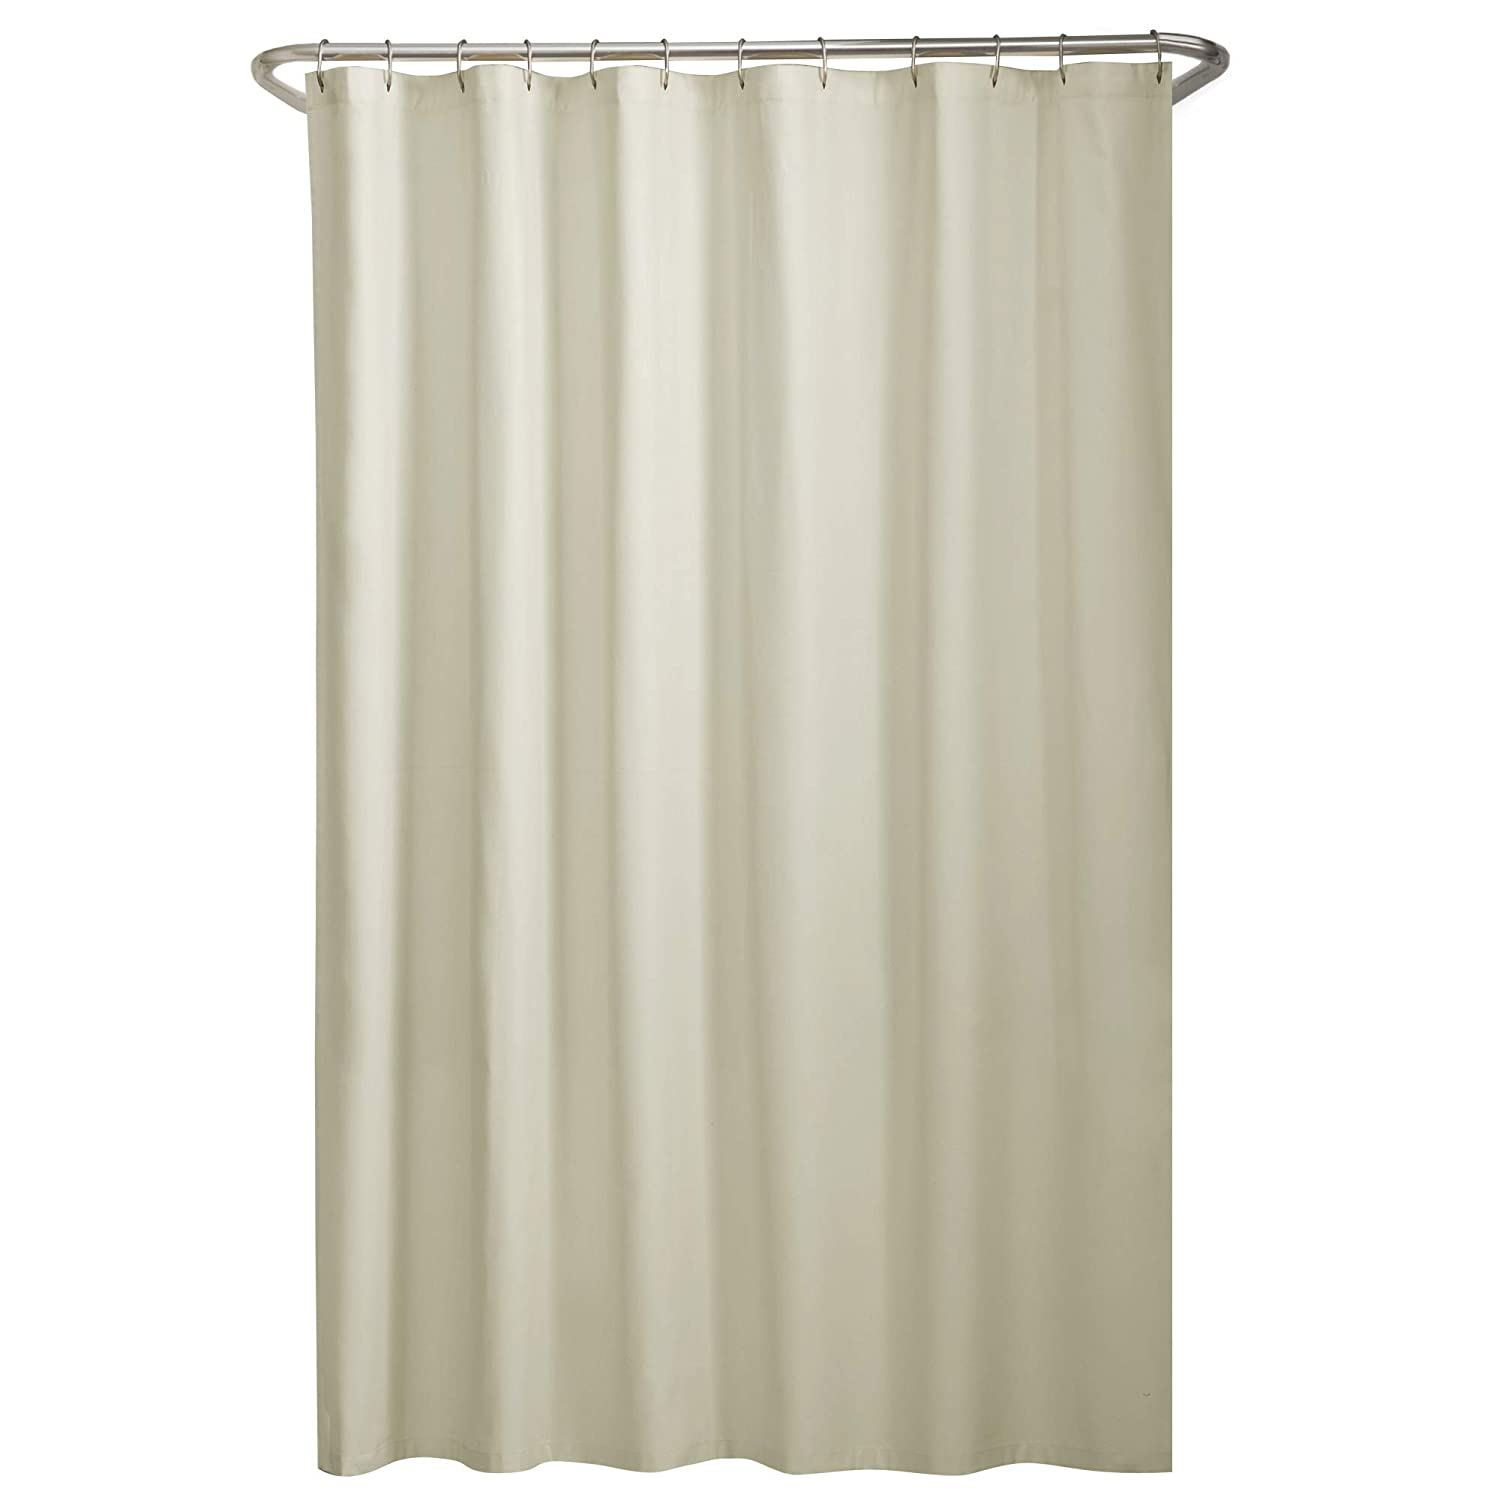 Maytex Water Repellent Fabric Shower Curtain Or Liner Machine Washable 70 X 72 Amazonca Home Kitchen